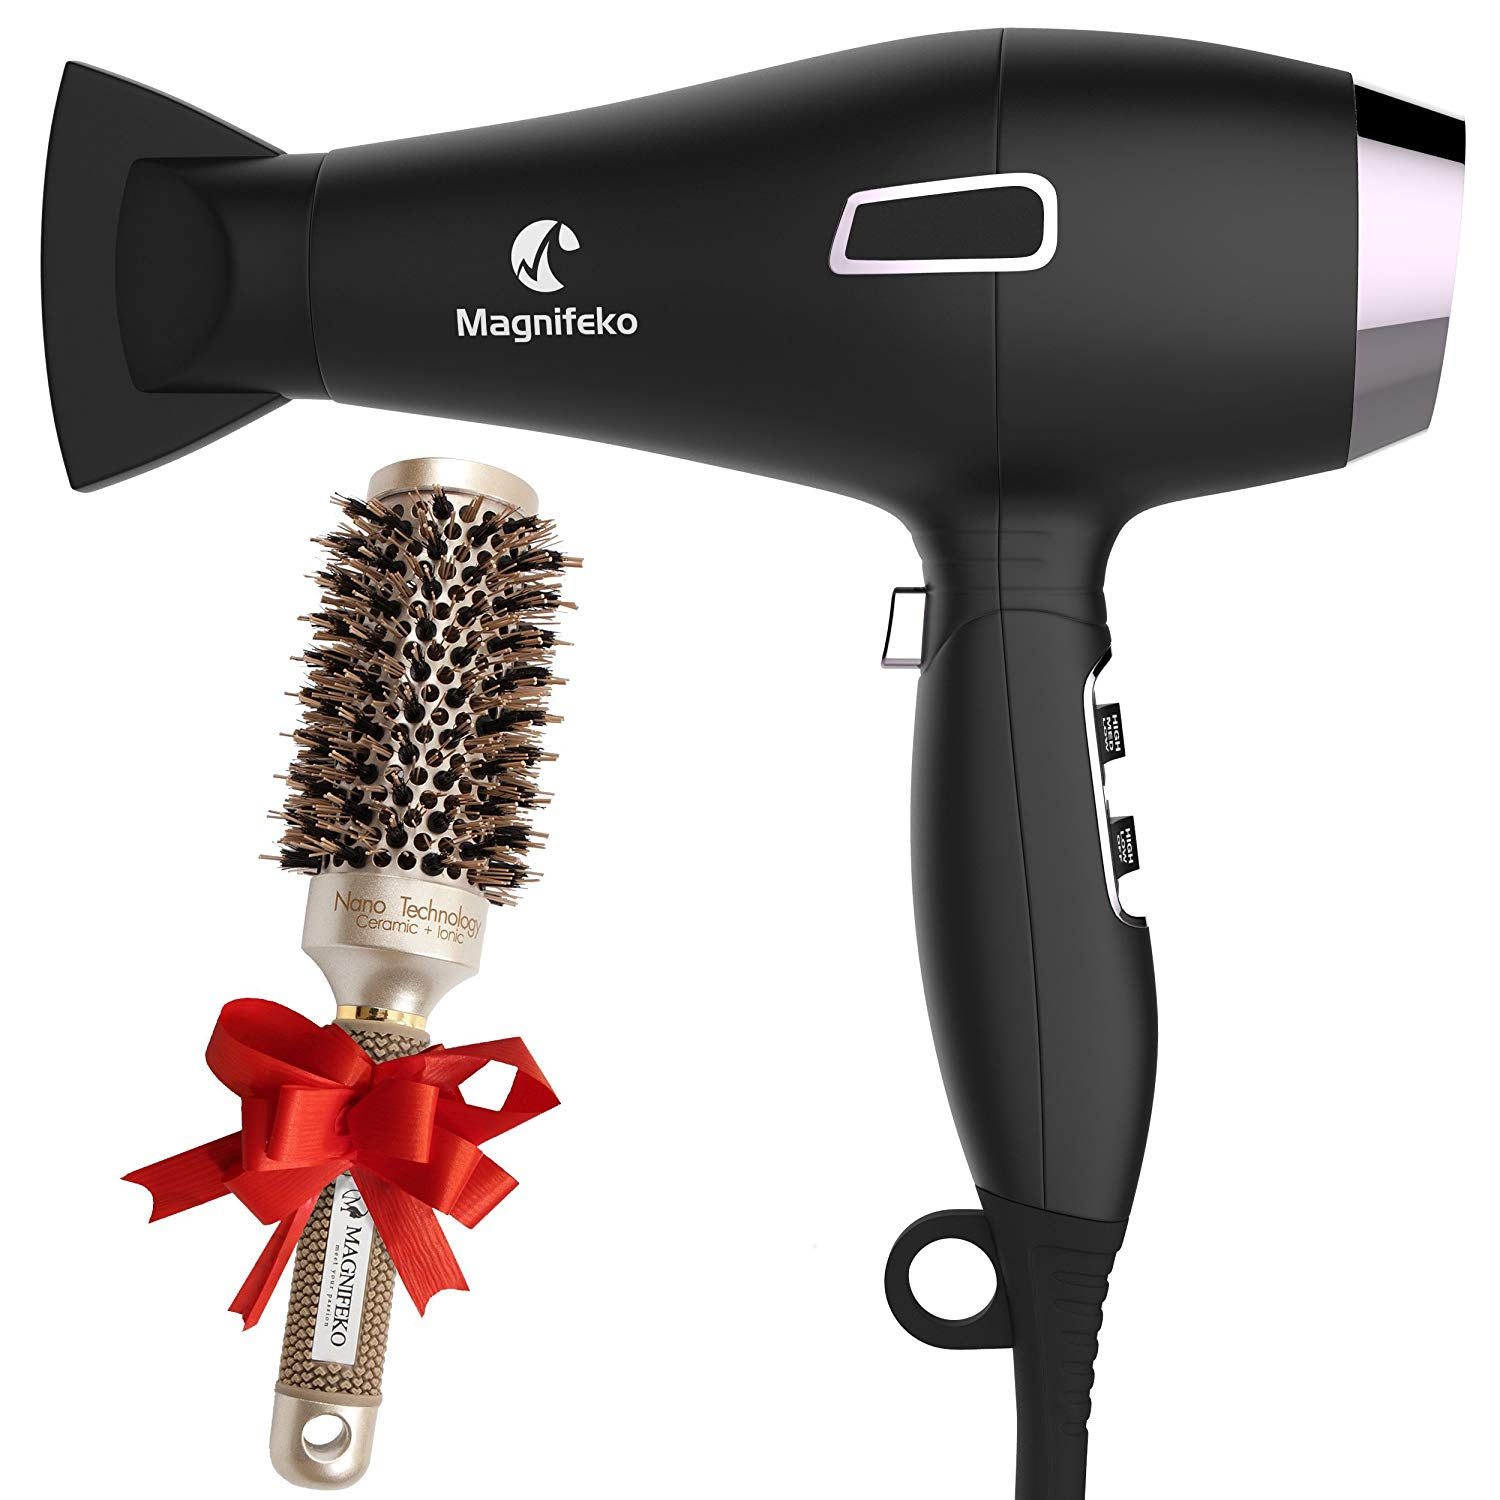 Ionic Hair Dryer with FREE Ceramic Blowdrying Brush | Anti-Frizz blow dryer with Extra-Fast 1875W Motor, ACLI Safety Plug, and Concentrator Nozzle | Professional Hairdryer for Men and Women